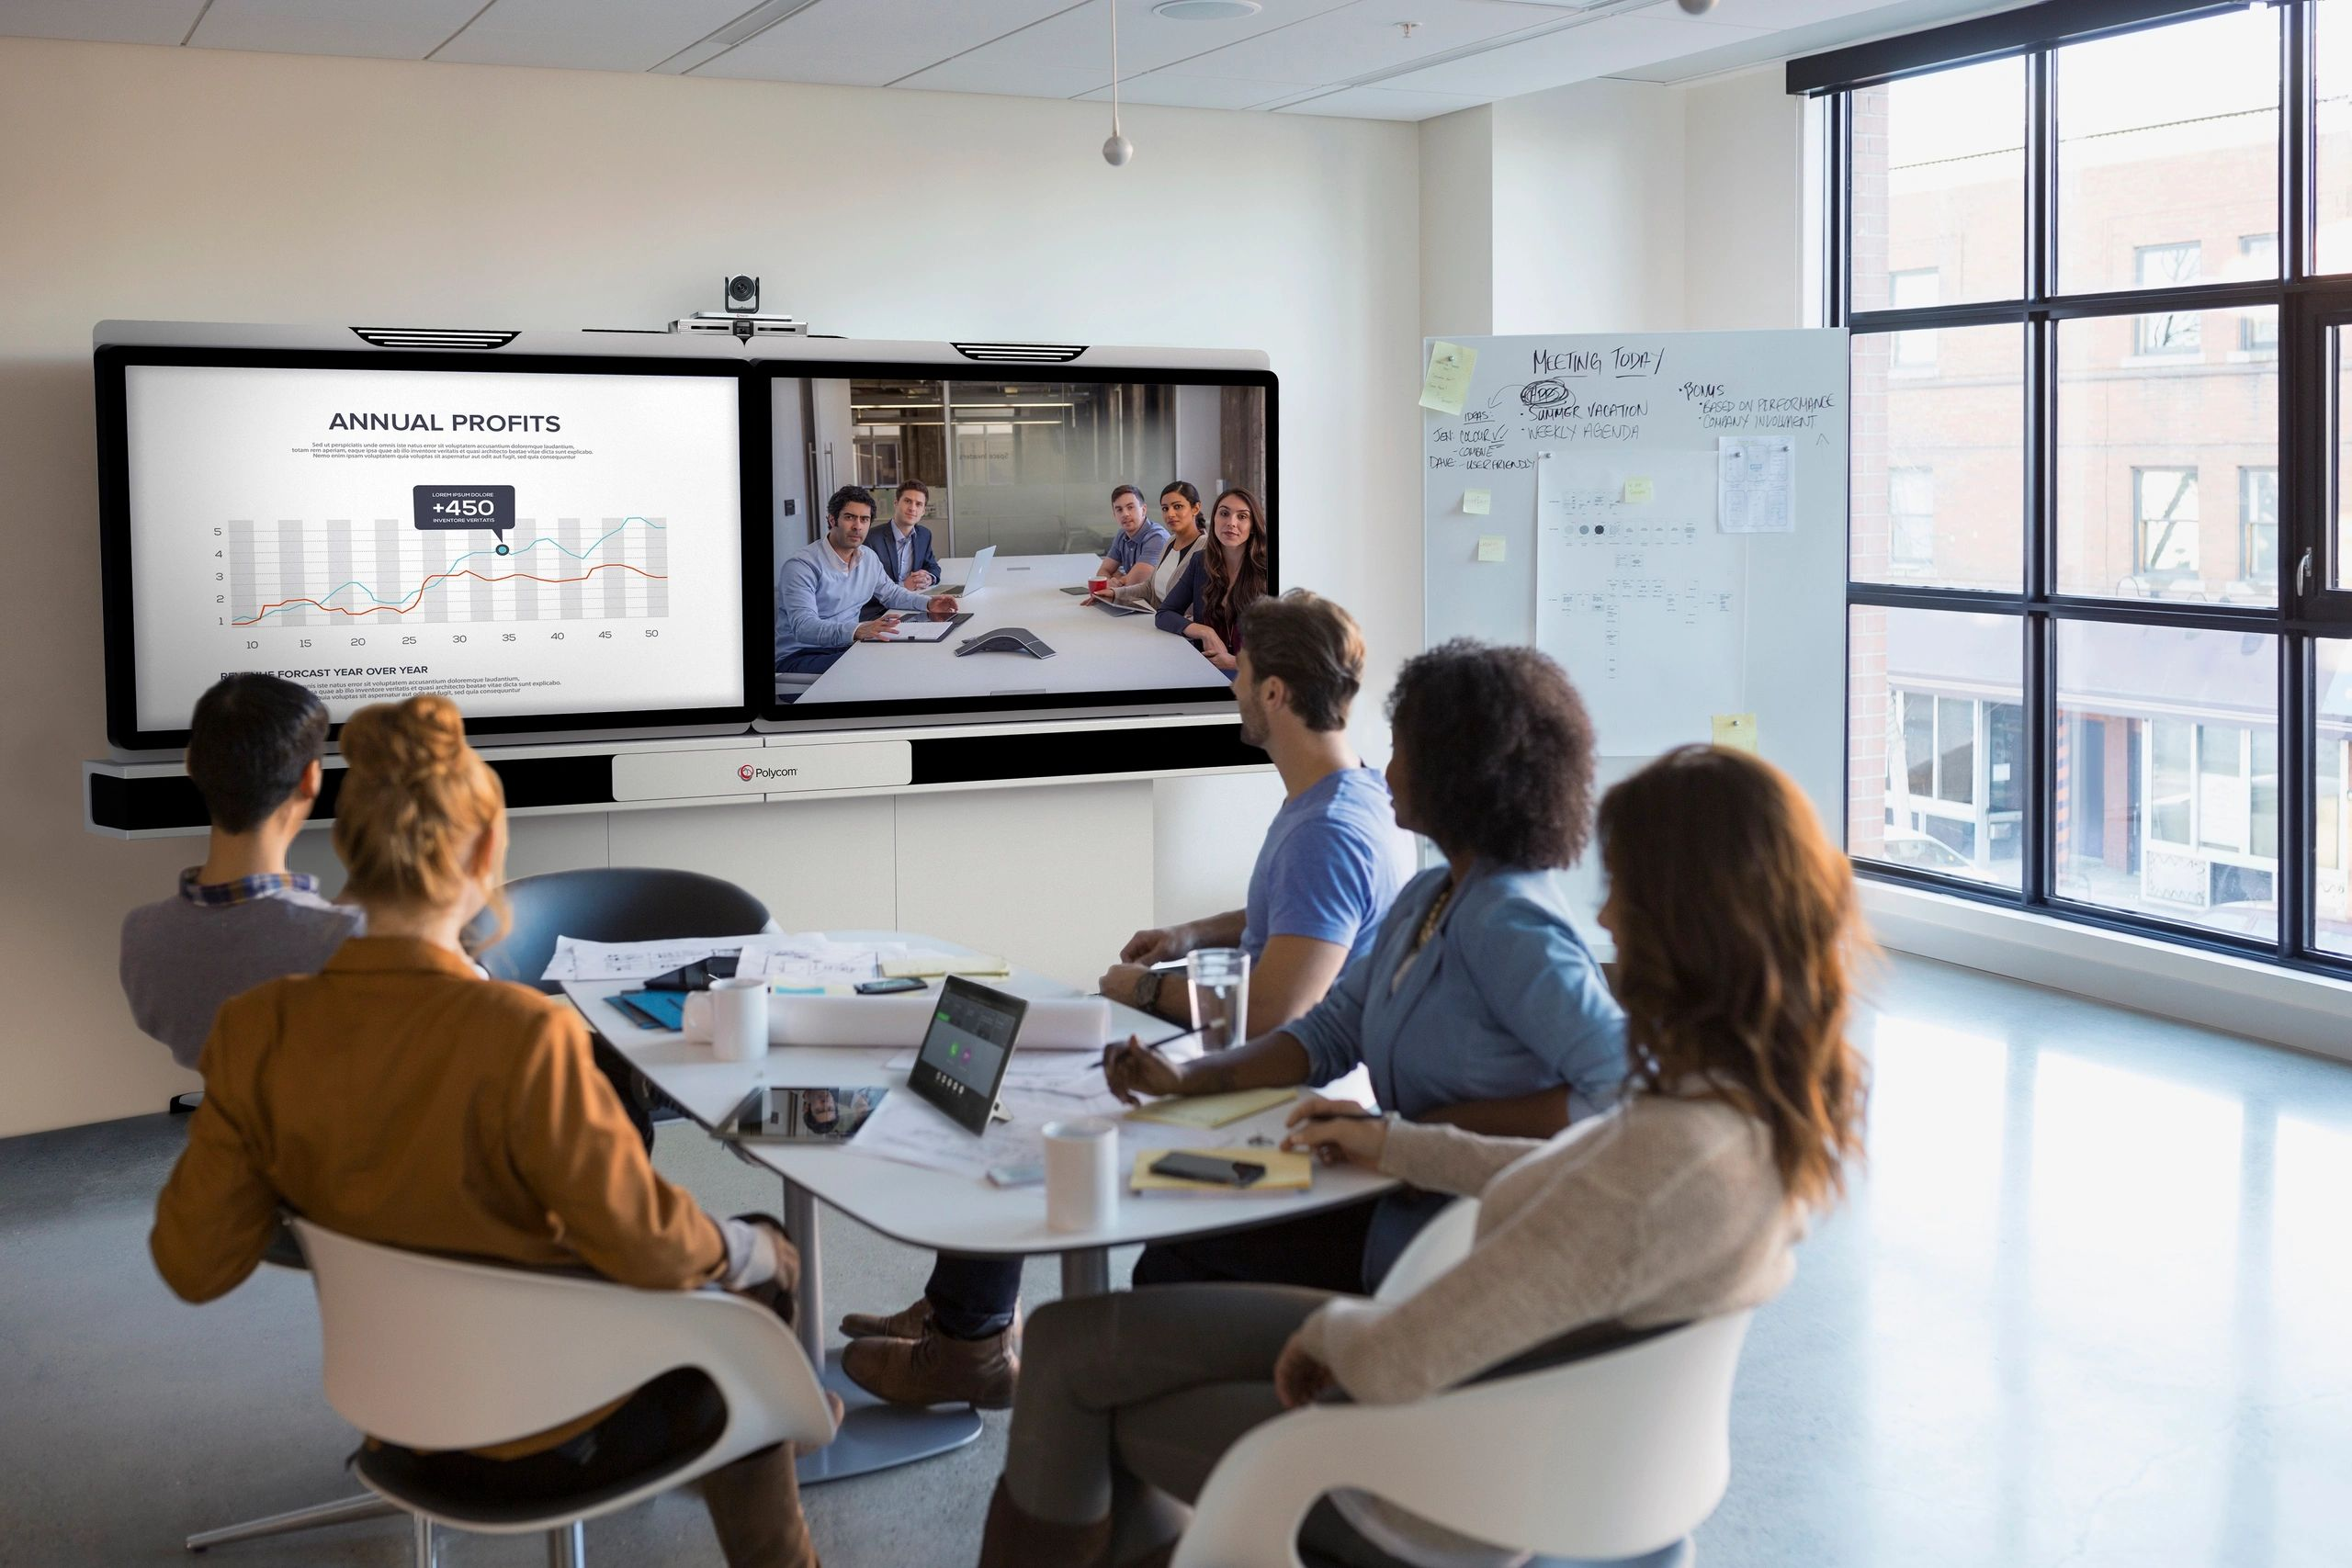 Audio Visual Video Conferencing in San Francisco, Zoom Room, Skype and Blue Jeans.